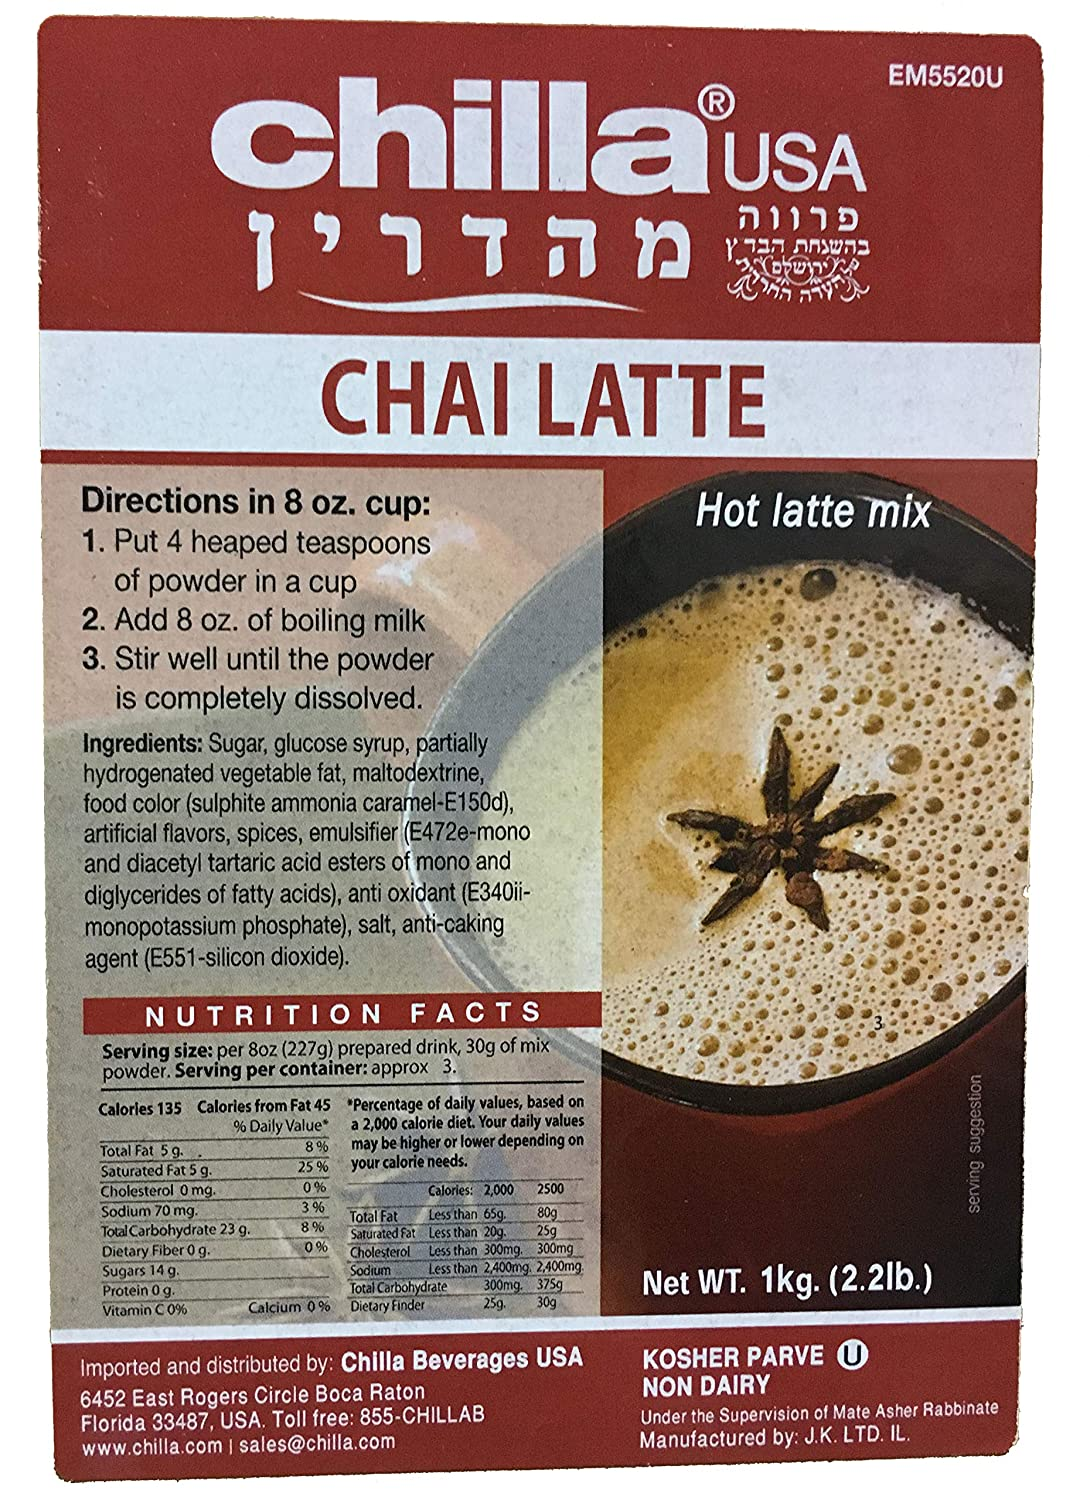 Amazon.com : Chilla by SSE Chai Latte Hot Latte Mix, 2.2 Pound Bag : Grocery & Gourmet Food